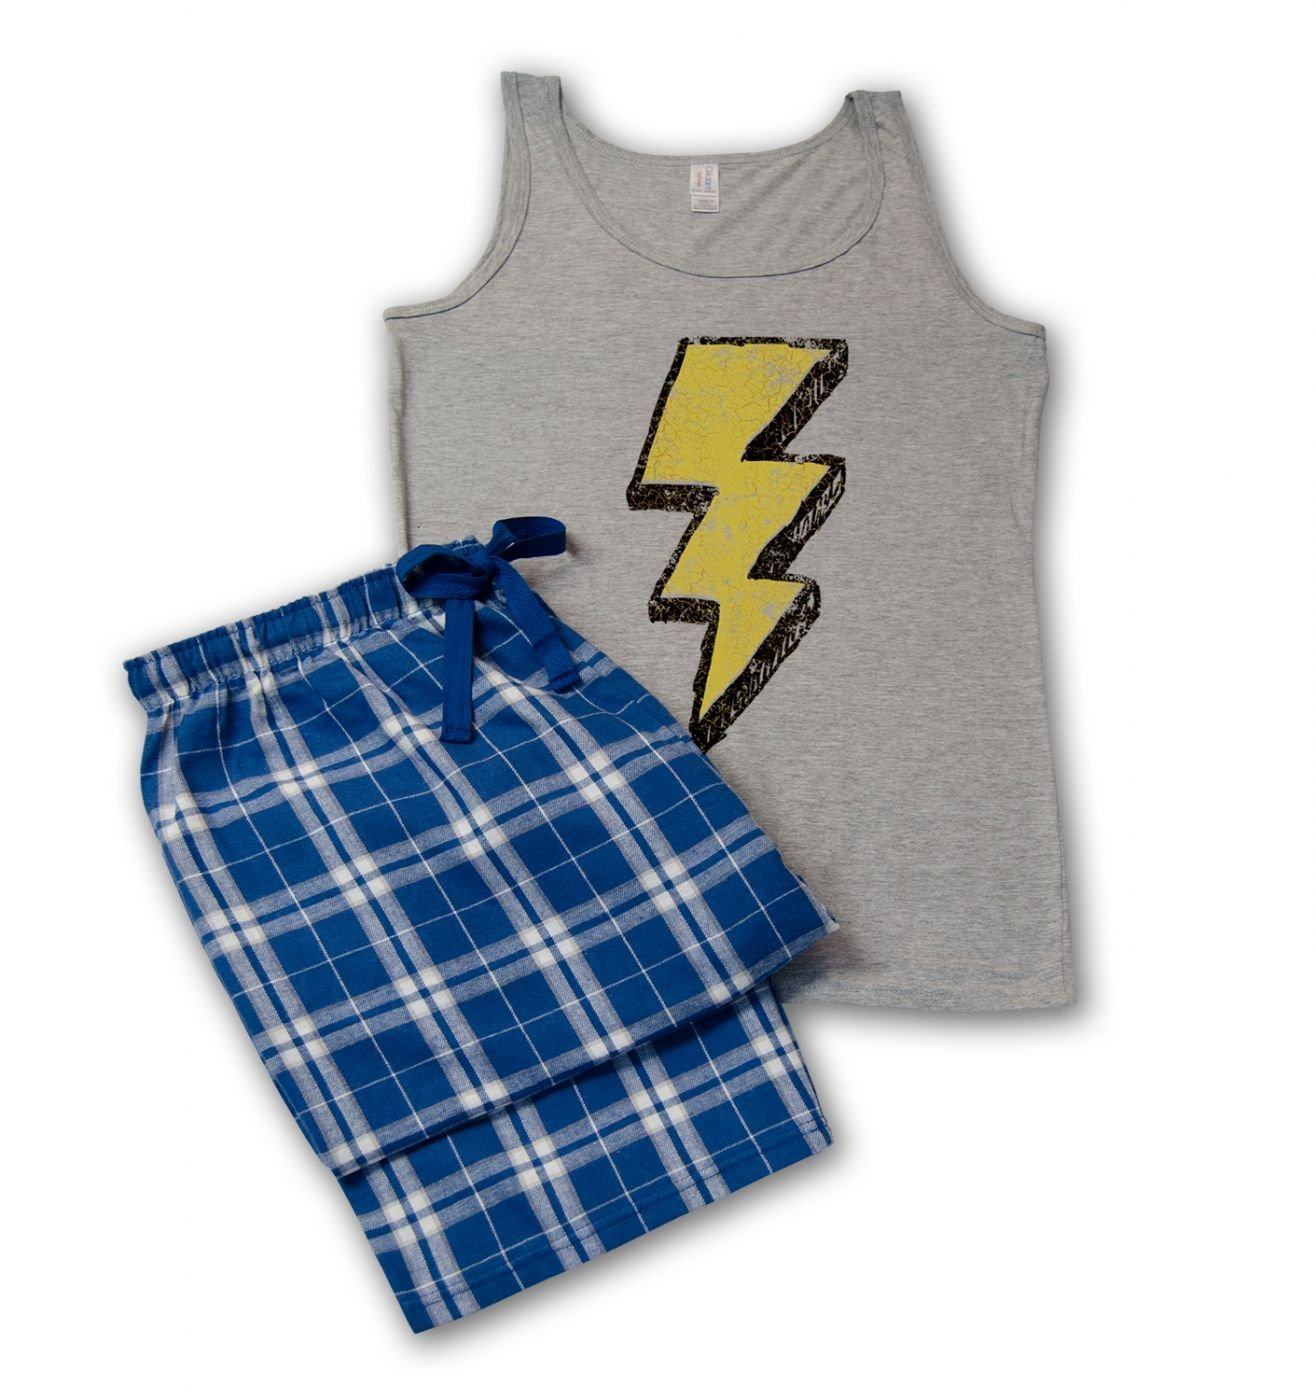 Distressed flash pyjamas (women's)